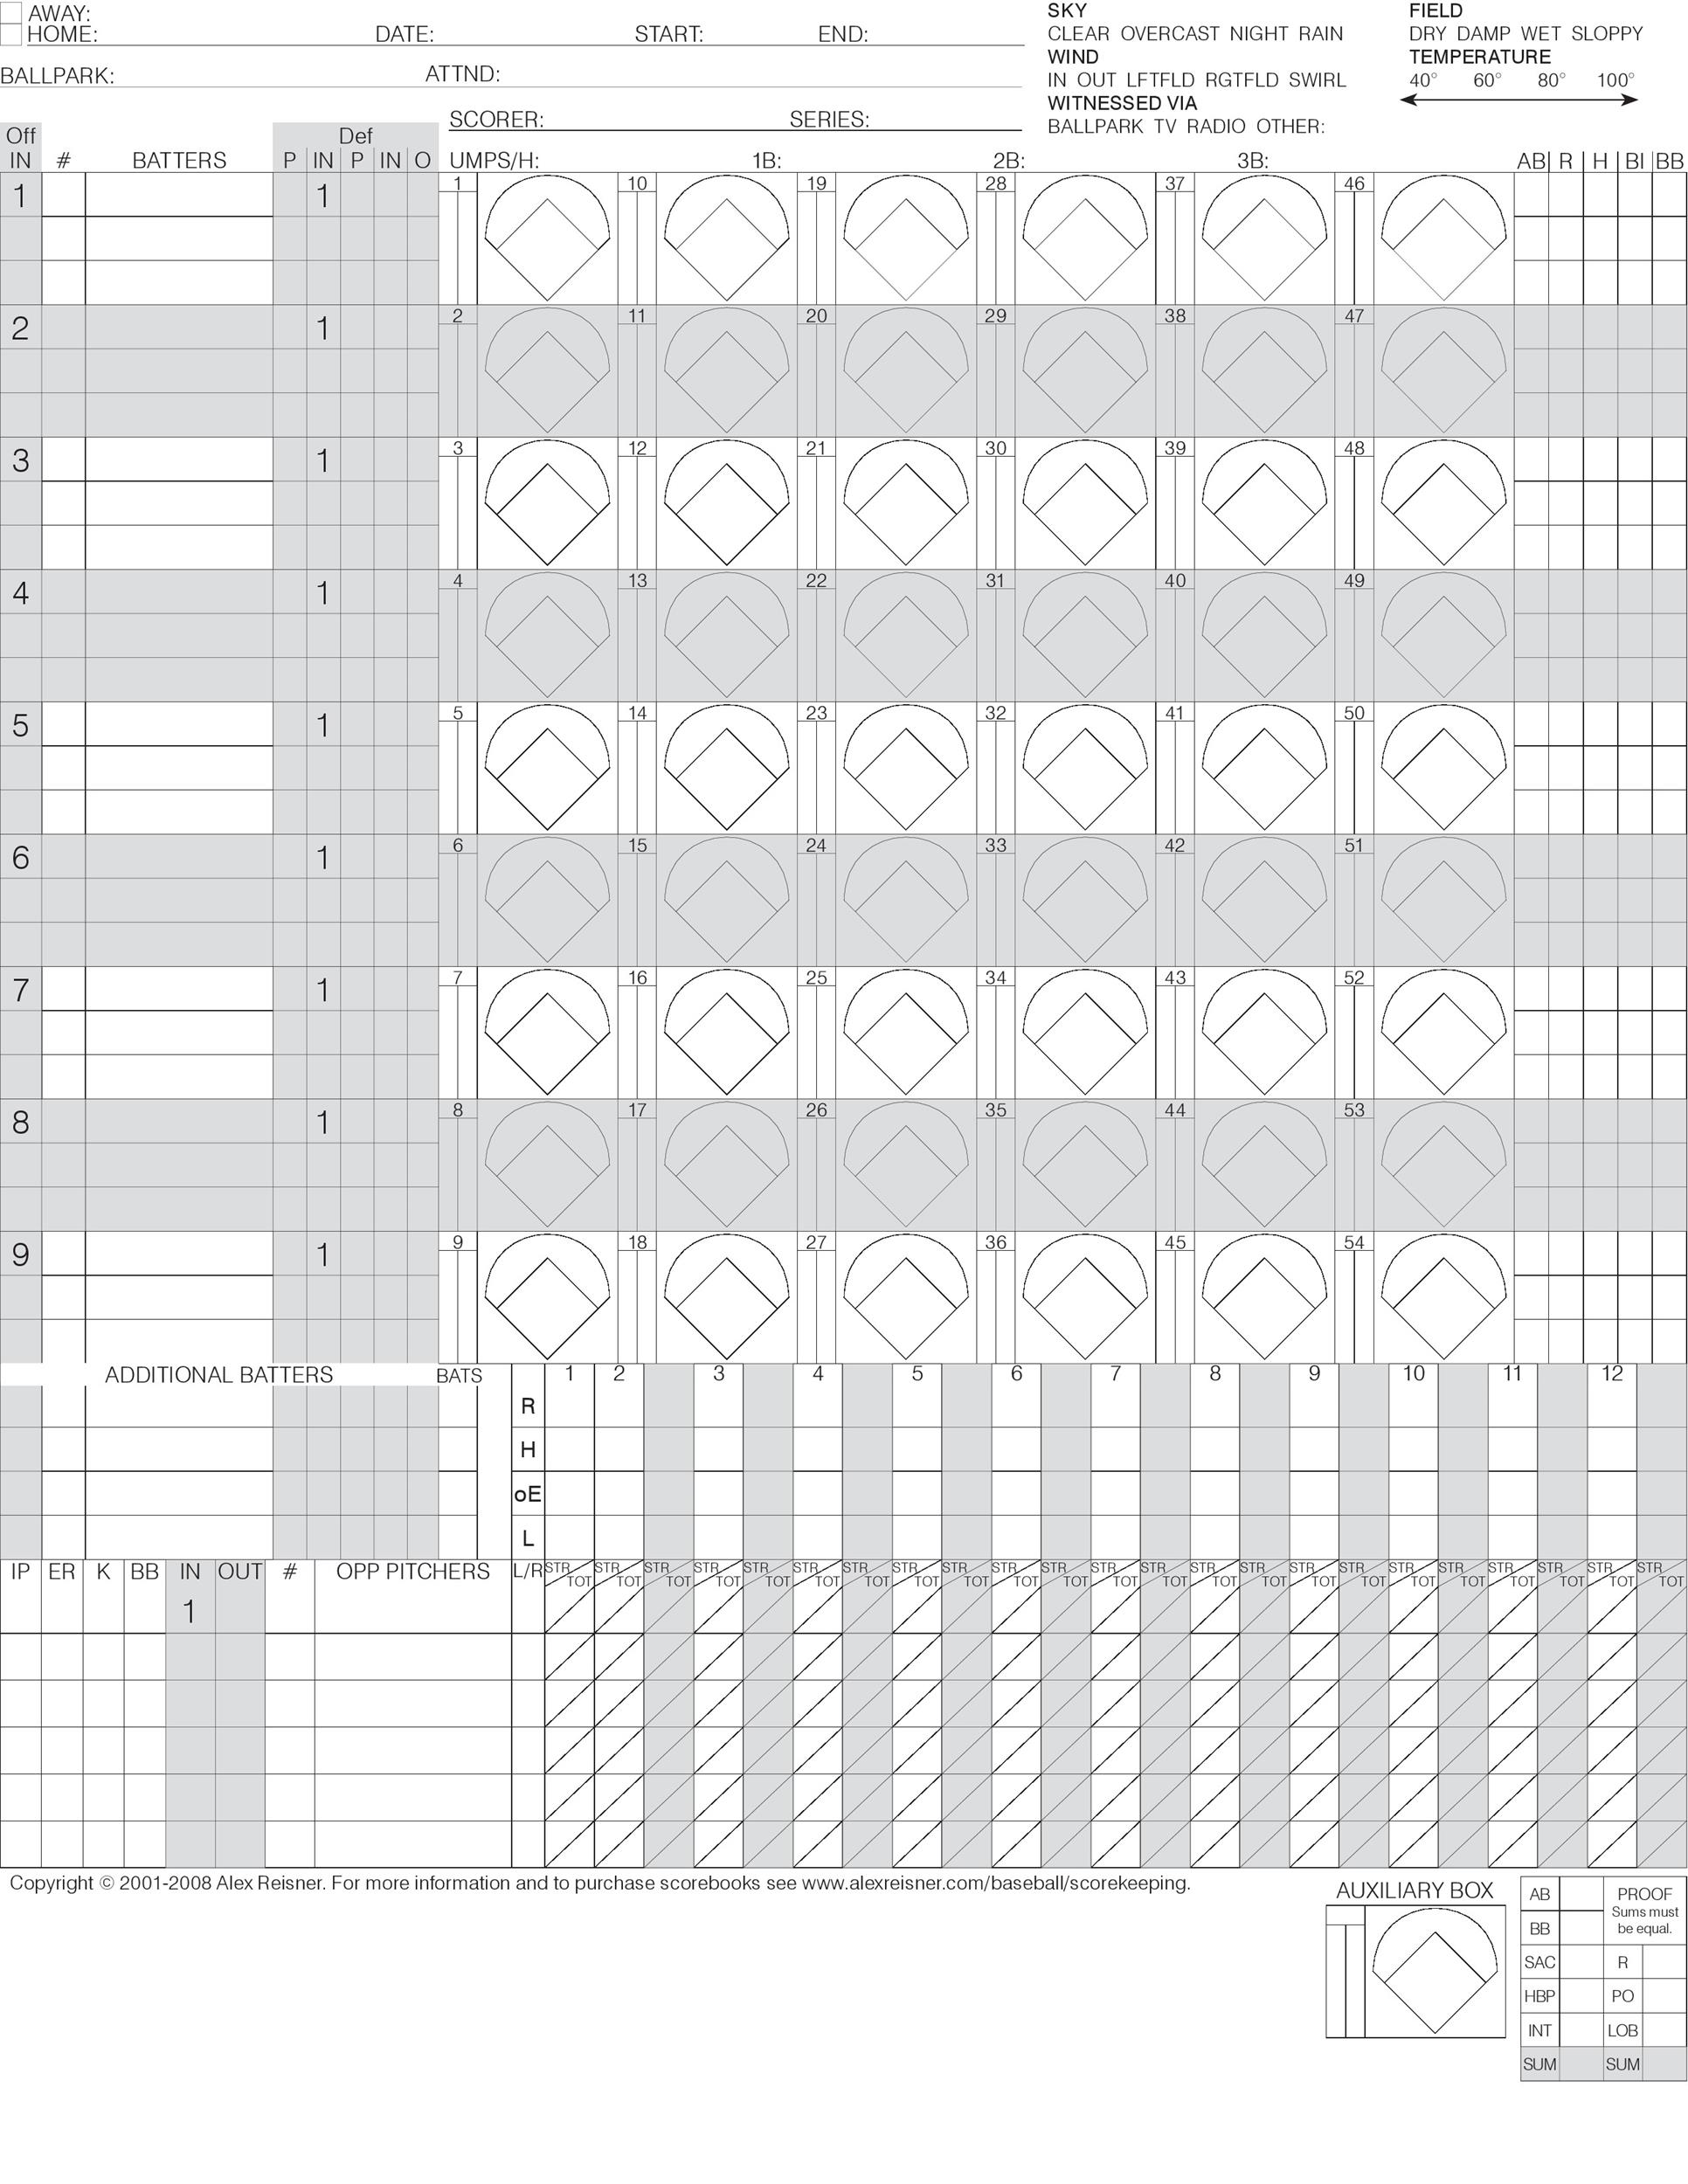 Printable Baseball Score Sheet Template 19